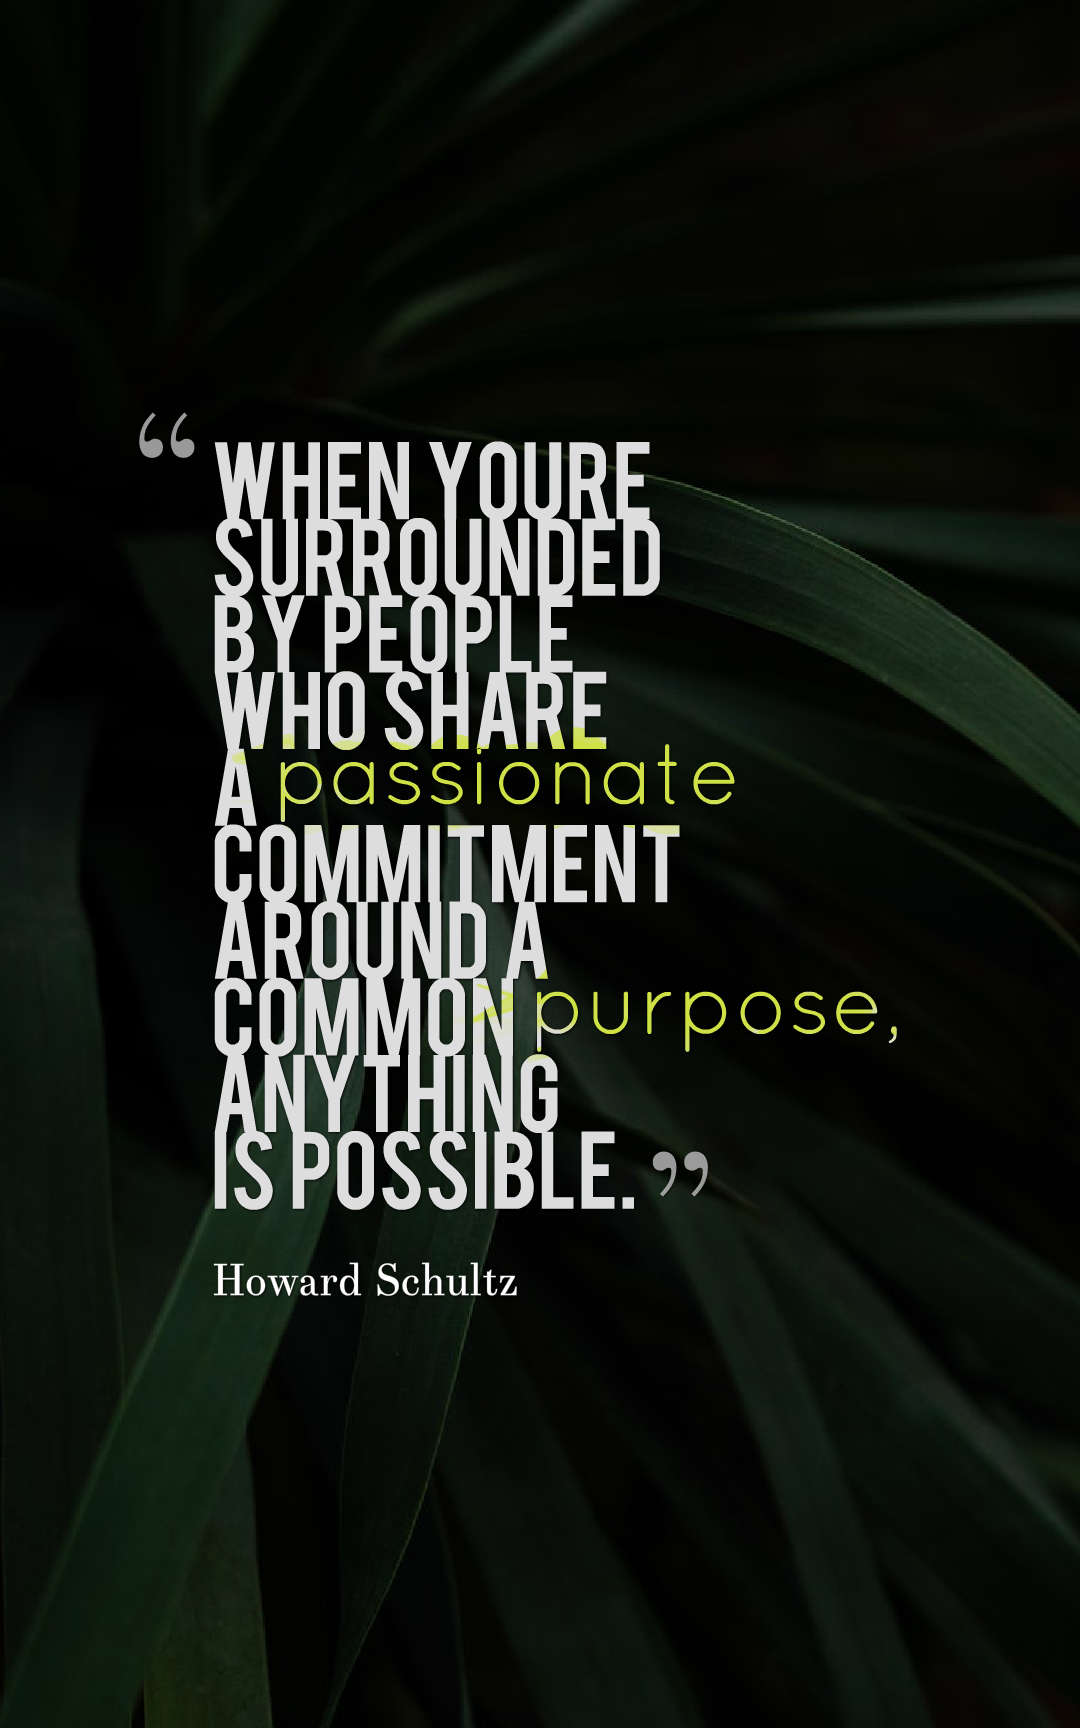 Quotes image of When you're surrounded by people who share a passionate commitment around a common purpose, anything is possible.